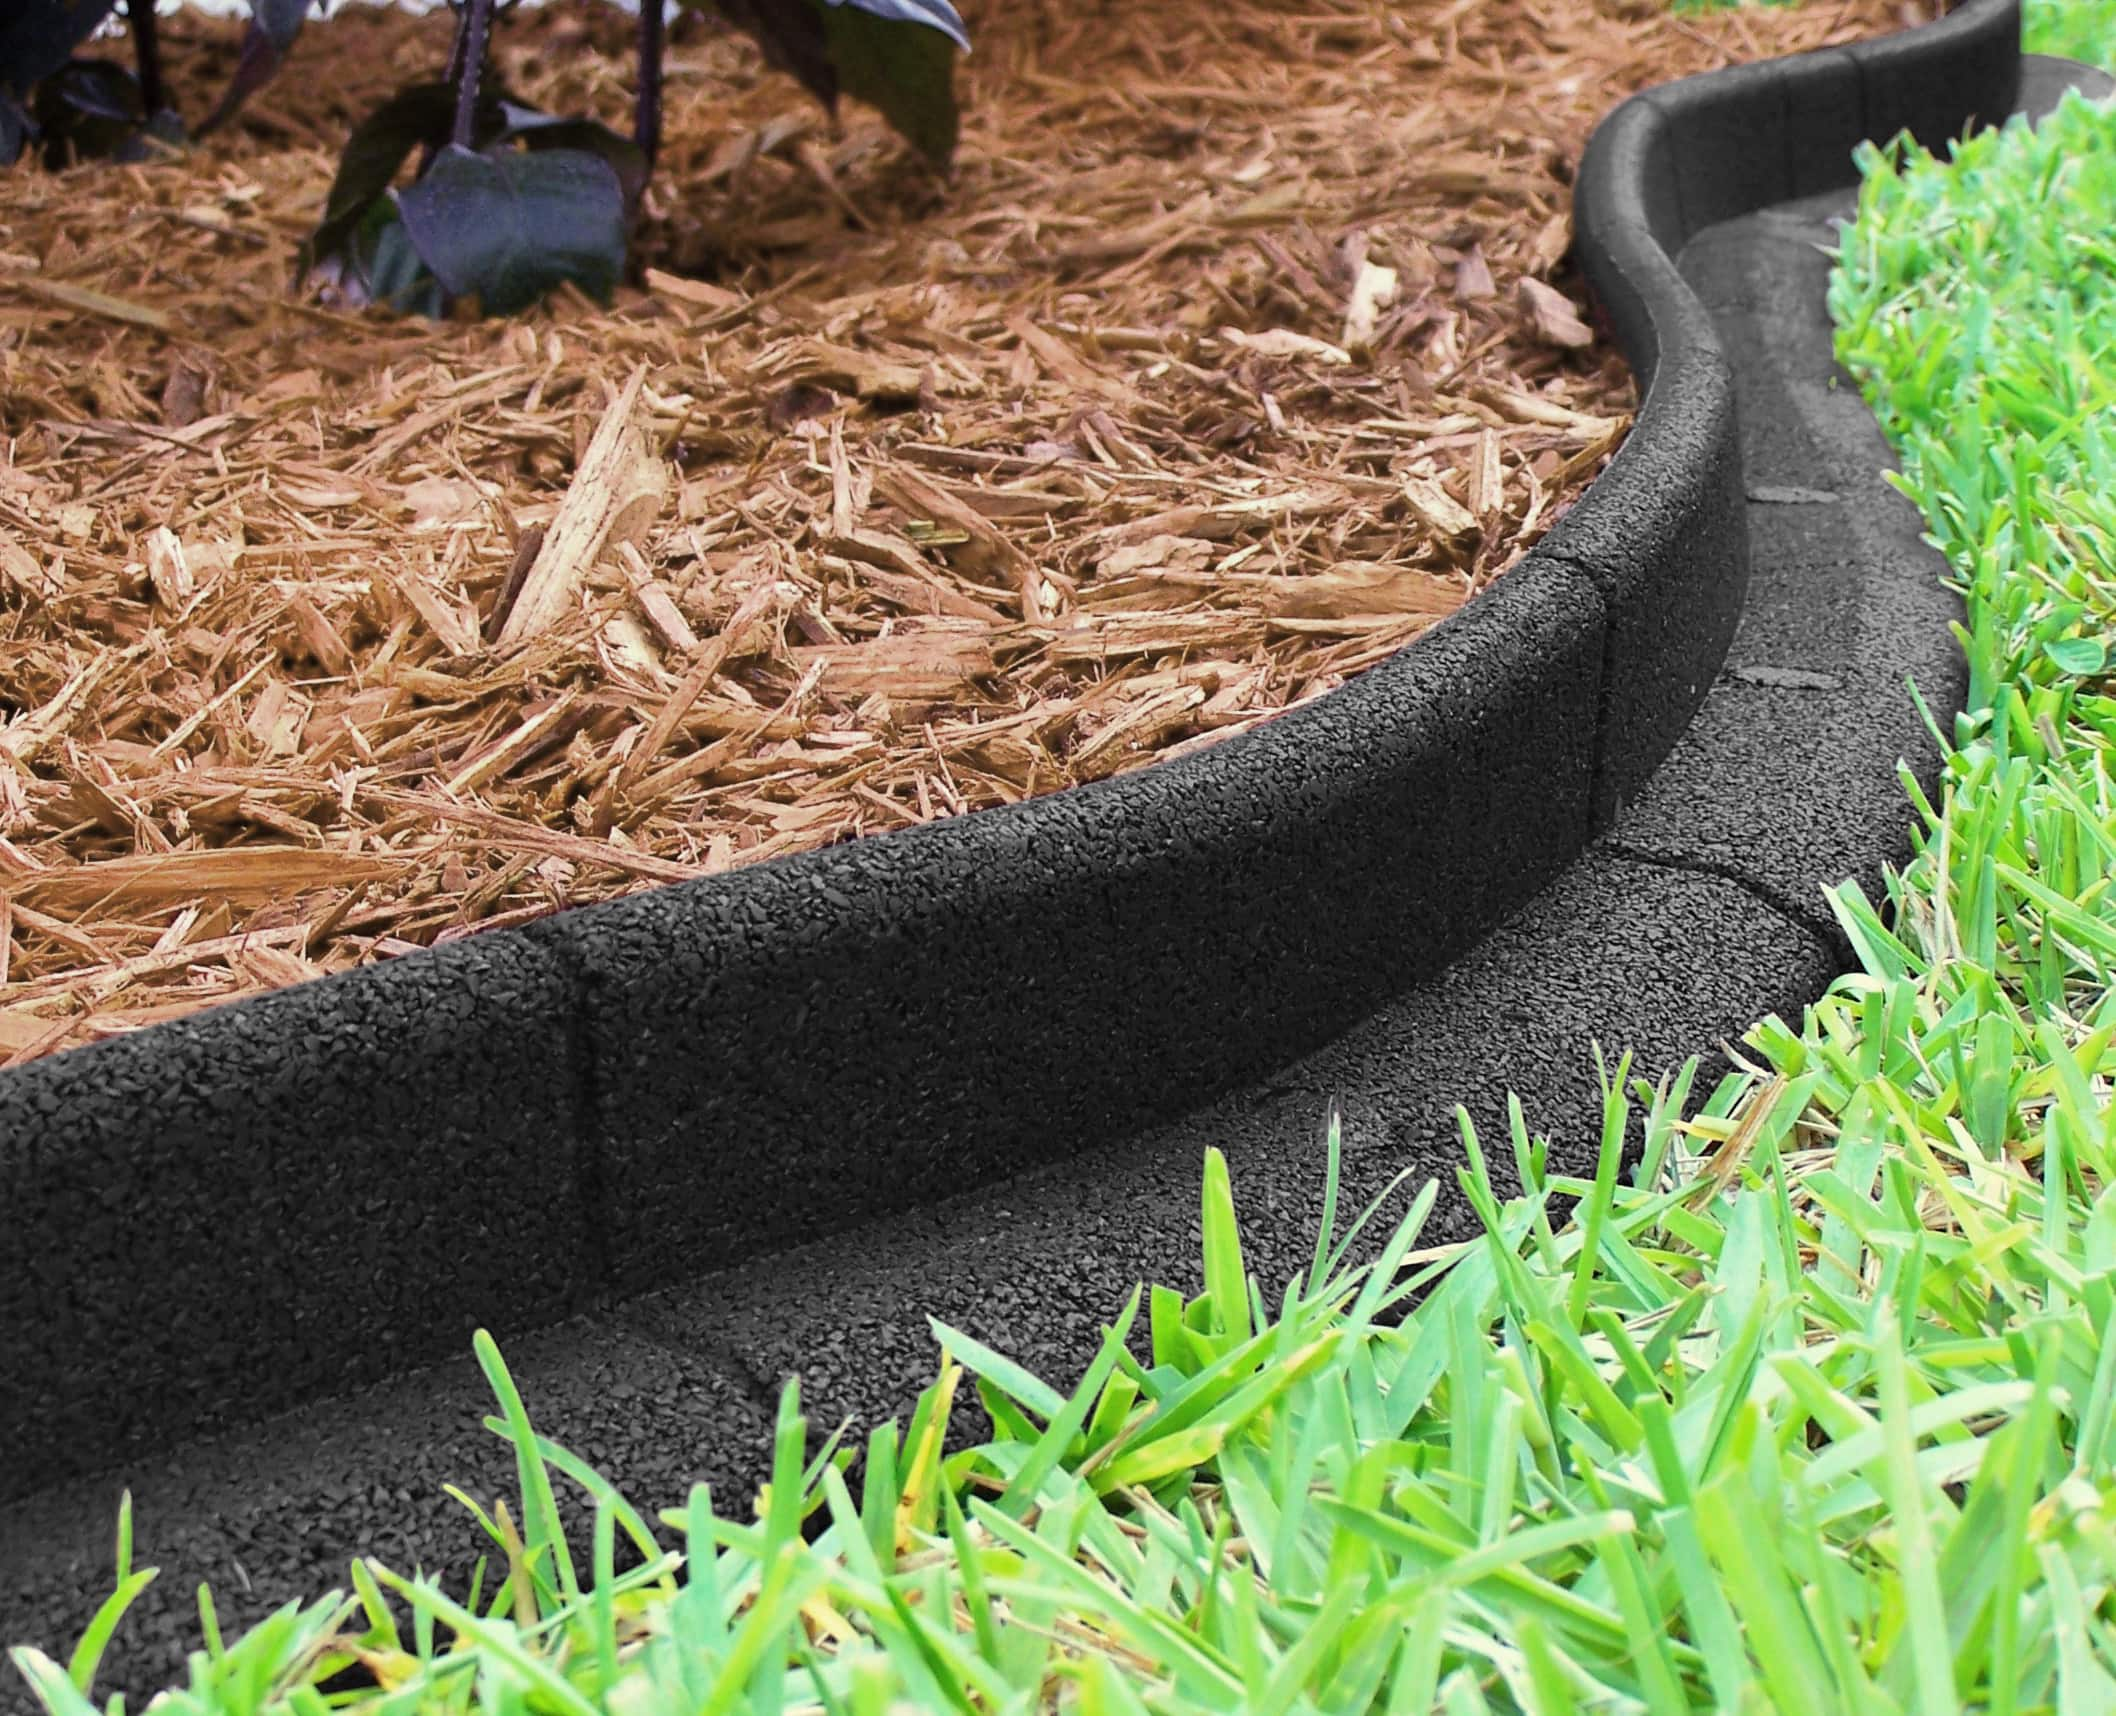 Black Rubber No Dig Landscape Edging - $5 4ft Section, Walmart Clearance YMMV B&M